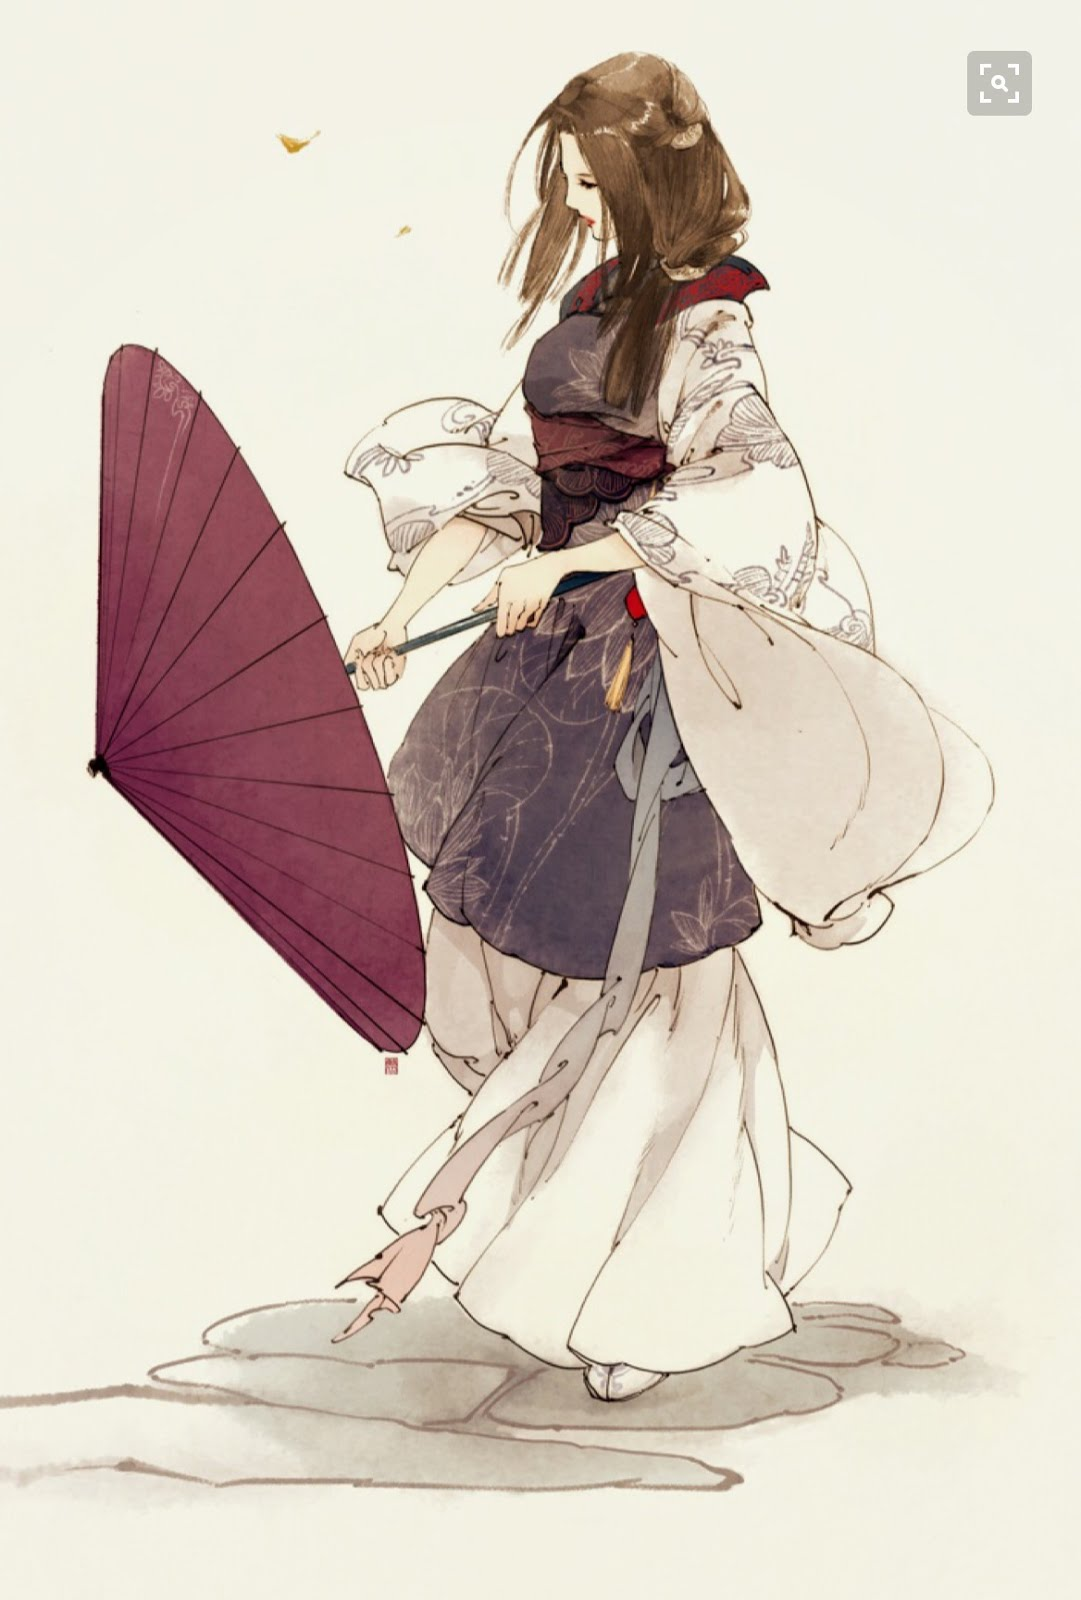 Chun Sik Sik and her umbrella